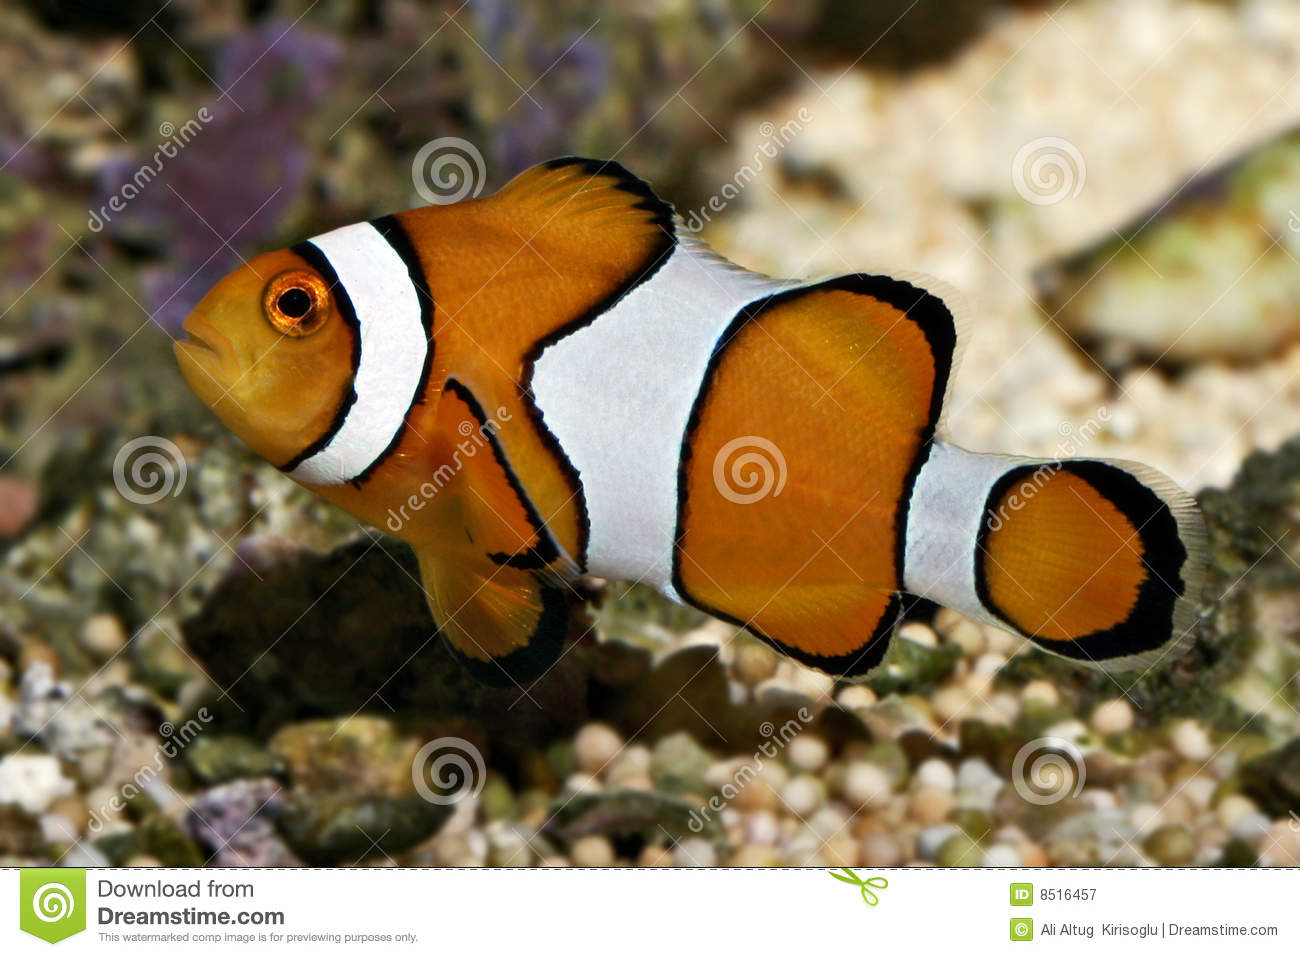 Clown fish known as nemo amphiprion percula royalty free for Clown fish nemo